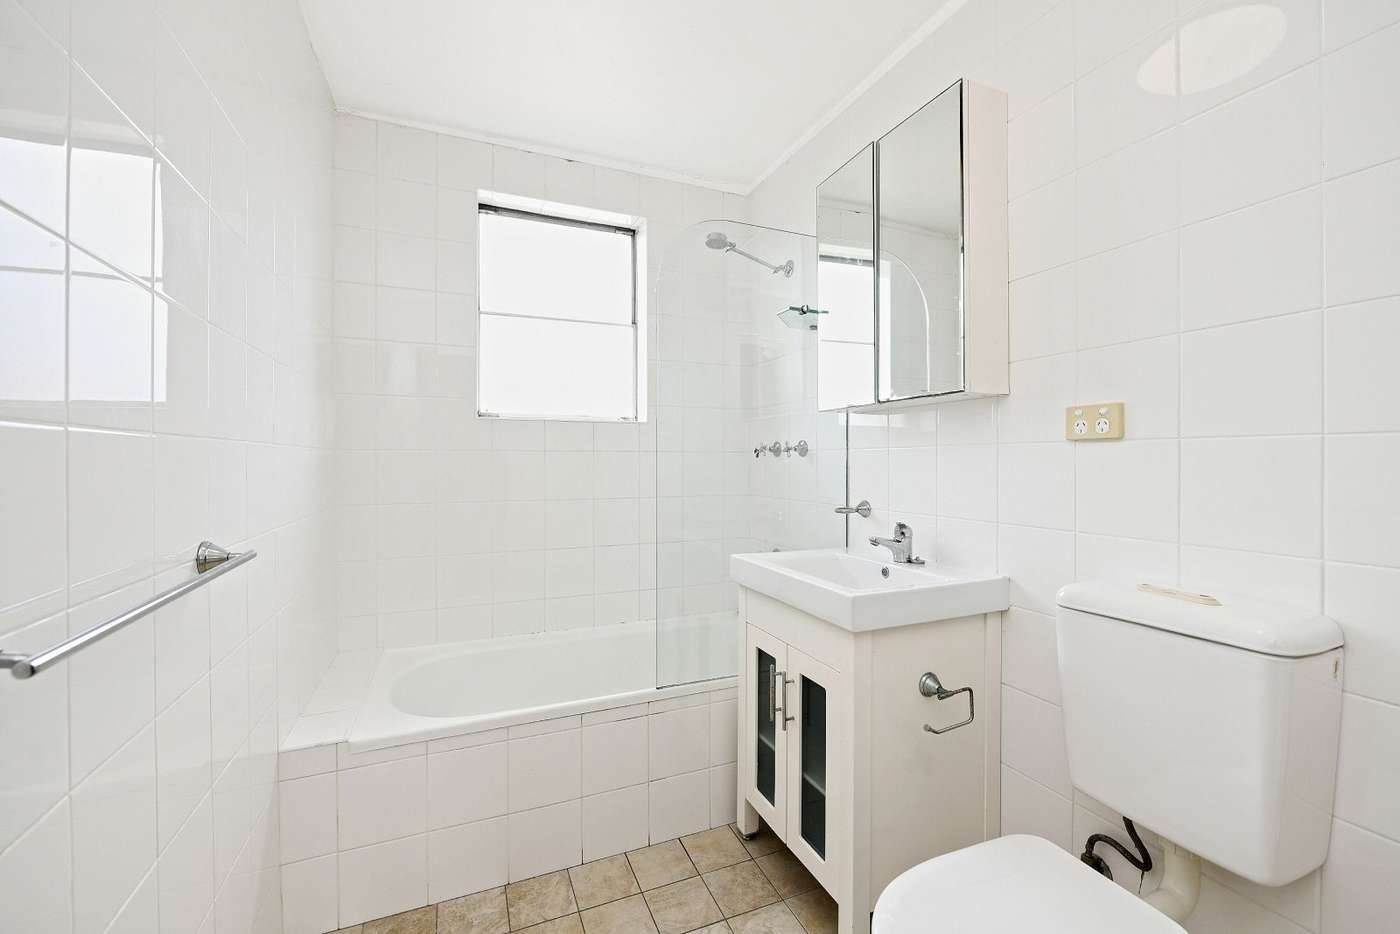 Sixth view of Homely unit listing, 12/19 Sheehy Street, Glebe NSW 2037